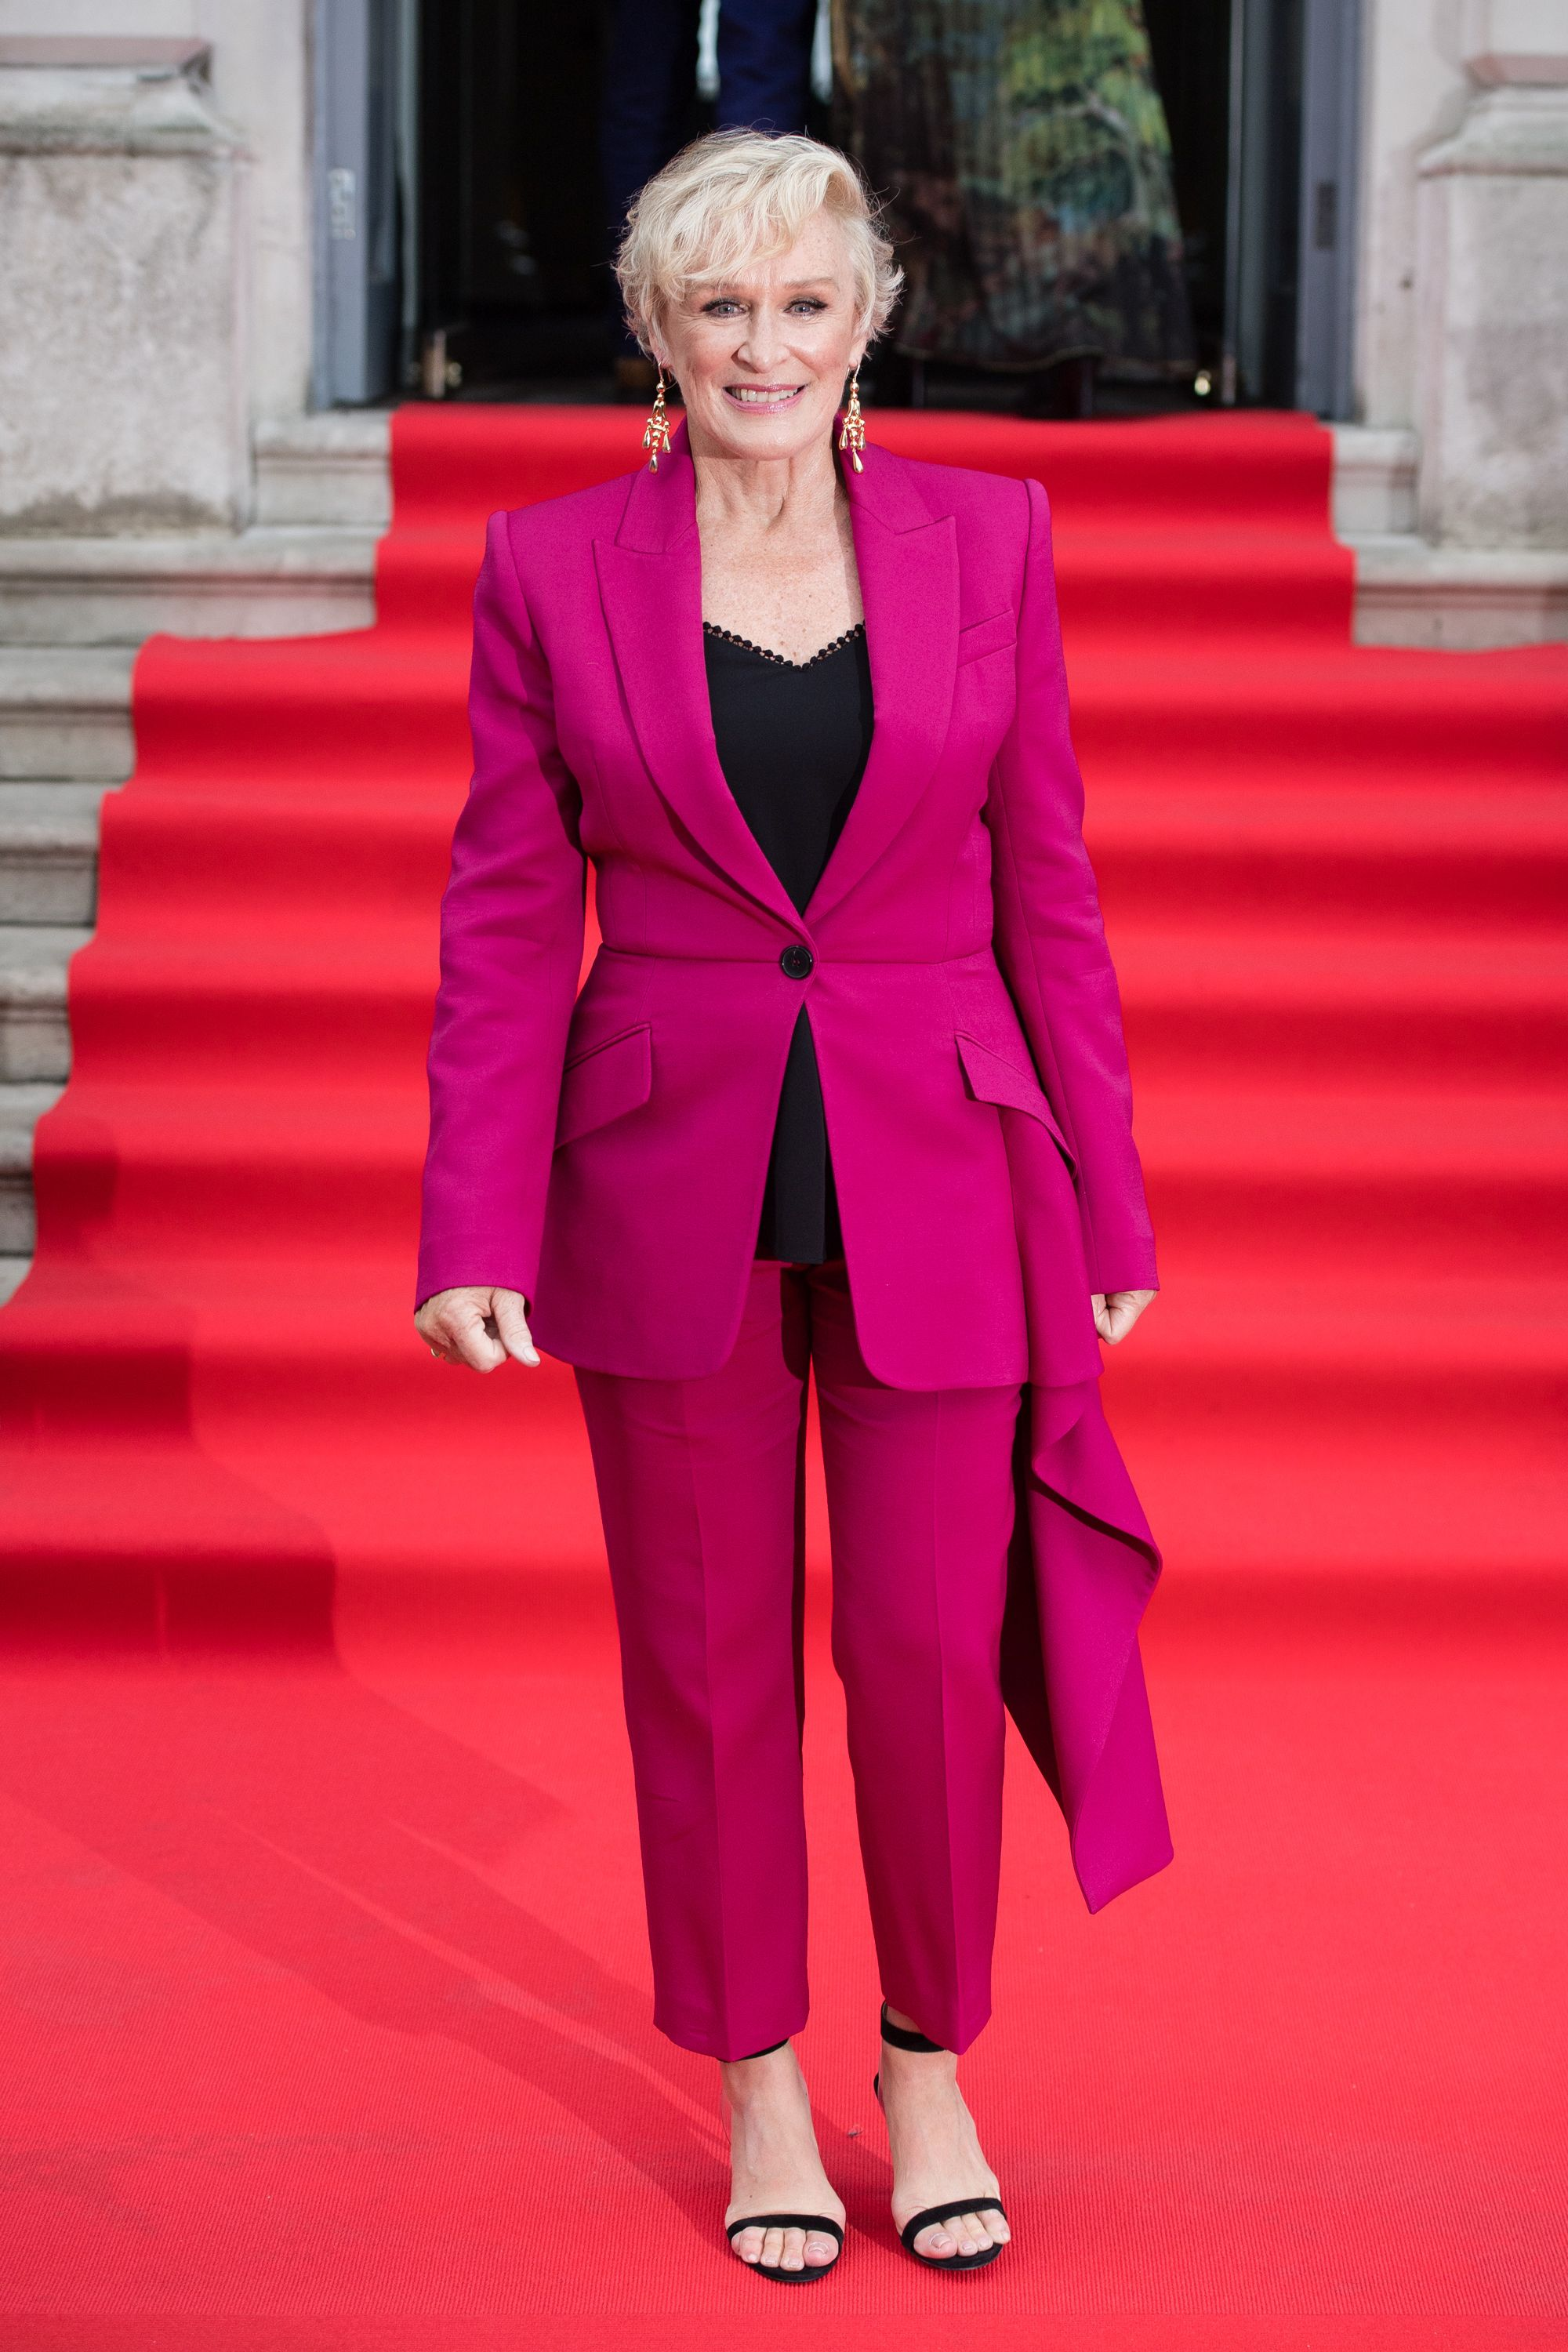 To the UK premiere of The Wife at Somerset House, Close wore a striking magenta suit by Alexander McQueen. The actress highlighted the suit's ruffle detail by wearing a simple black camisole underneath with black heels and dangling earrings.